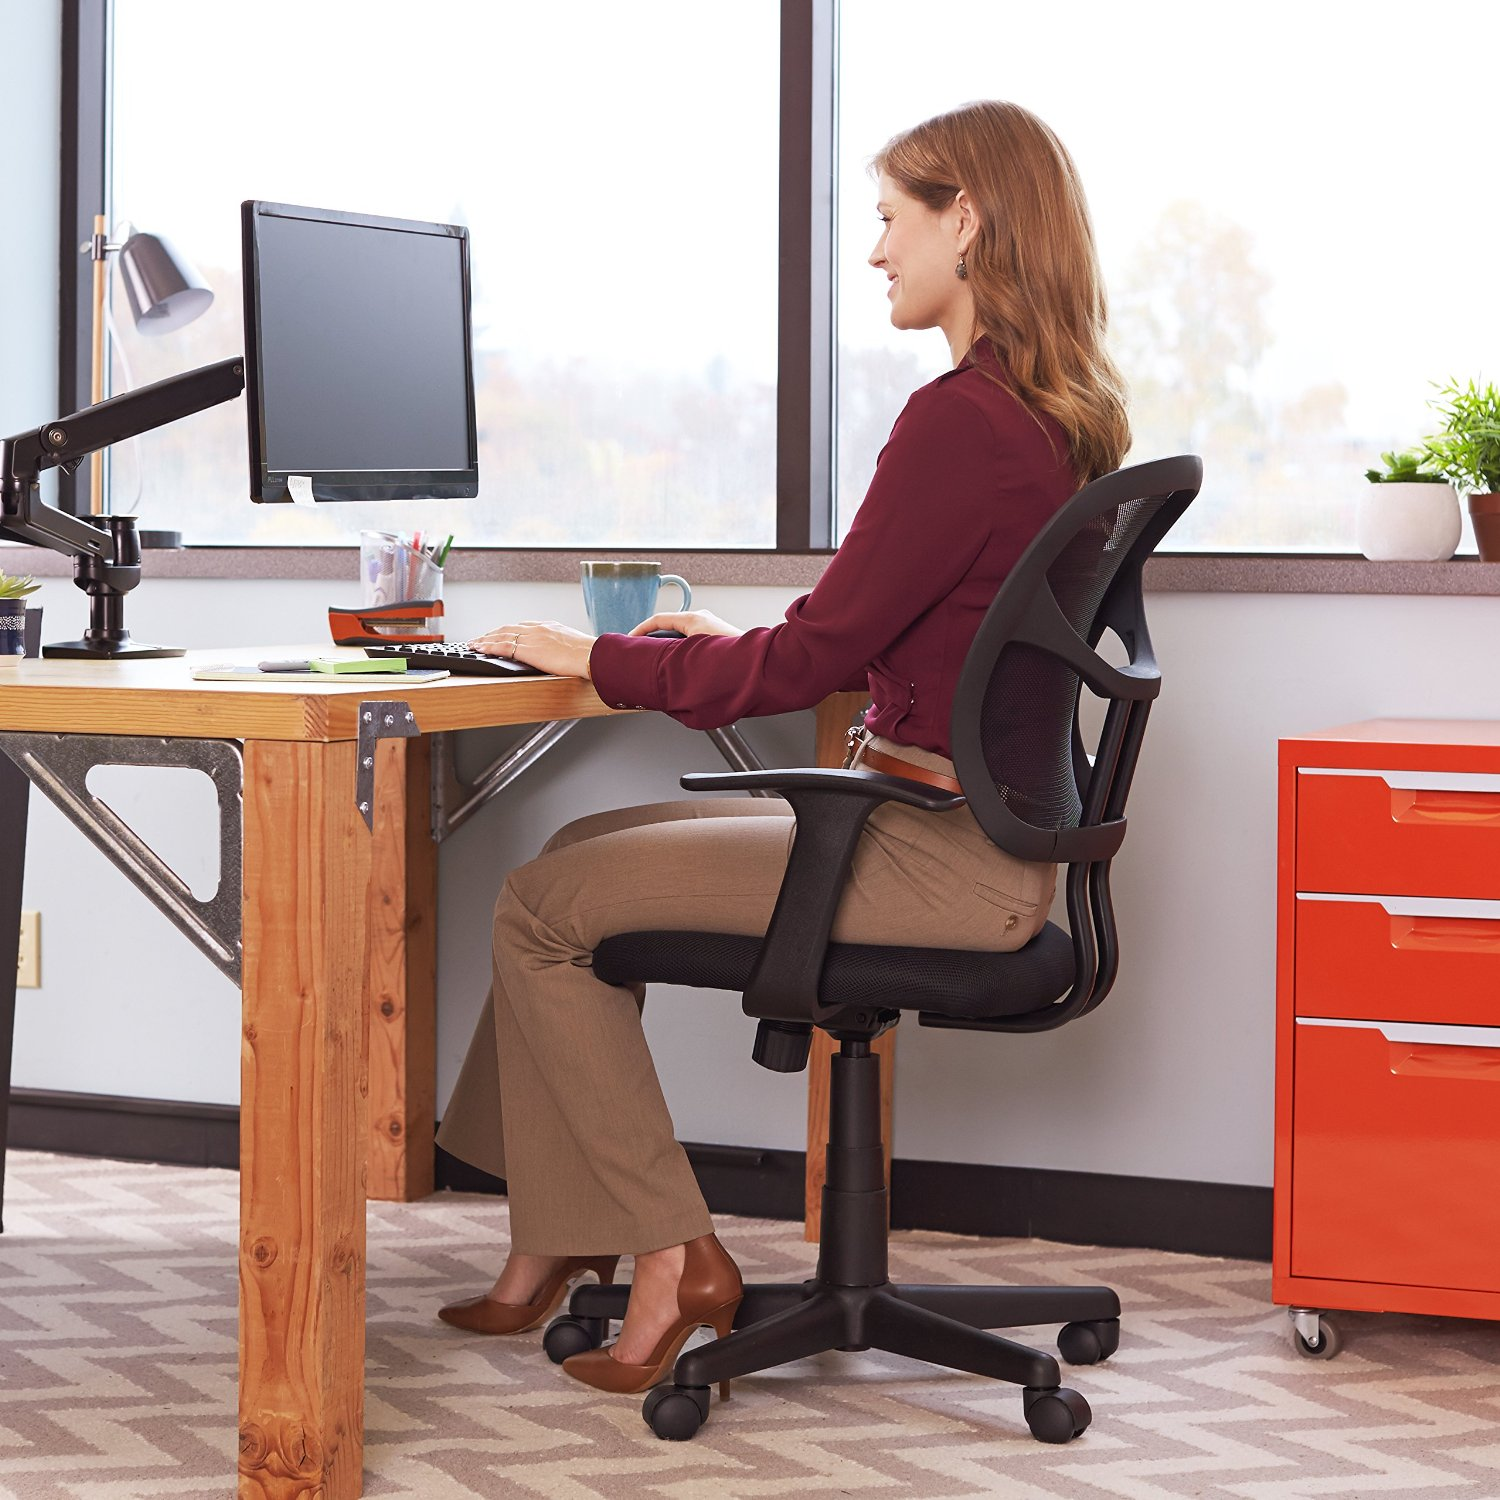 8 Of The Best Desk Chairs For Any Office